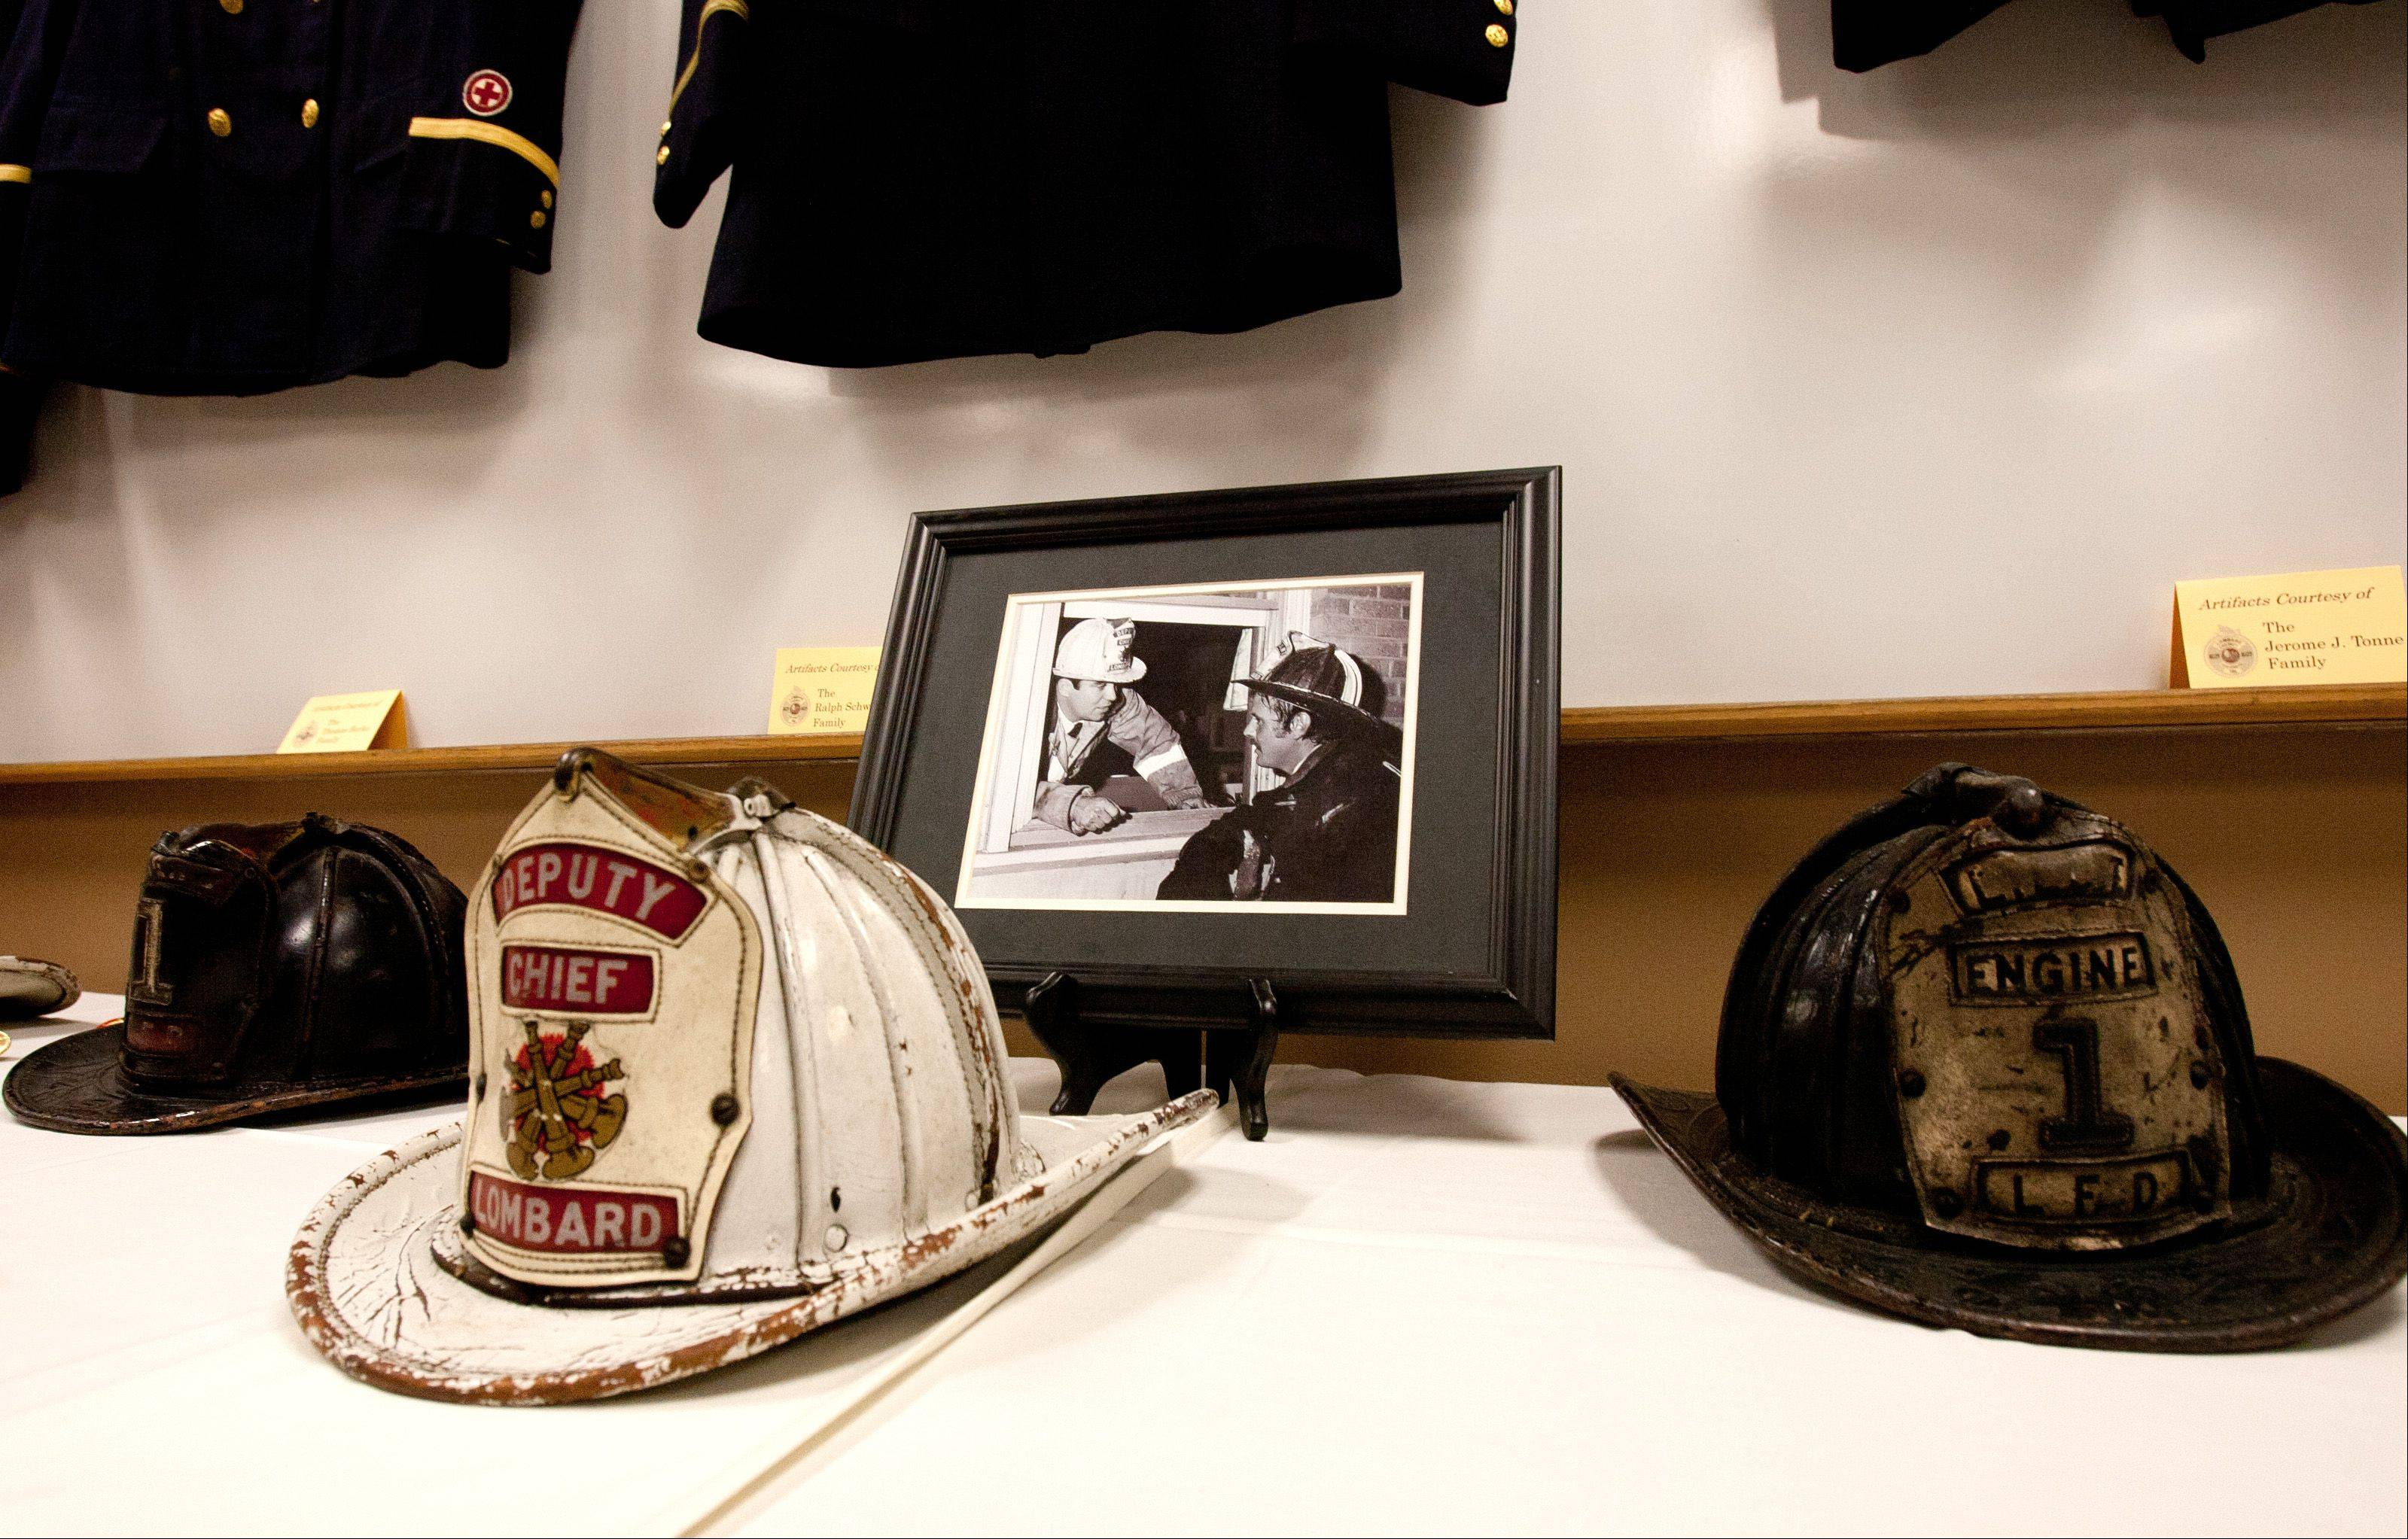 Artifacts are displayed at Station 1 during a ceremony honoring the 100th anniversary of the Lombard Fire Department.